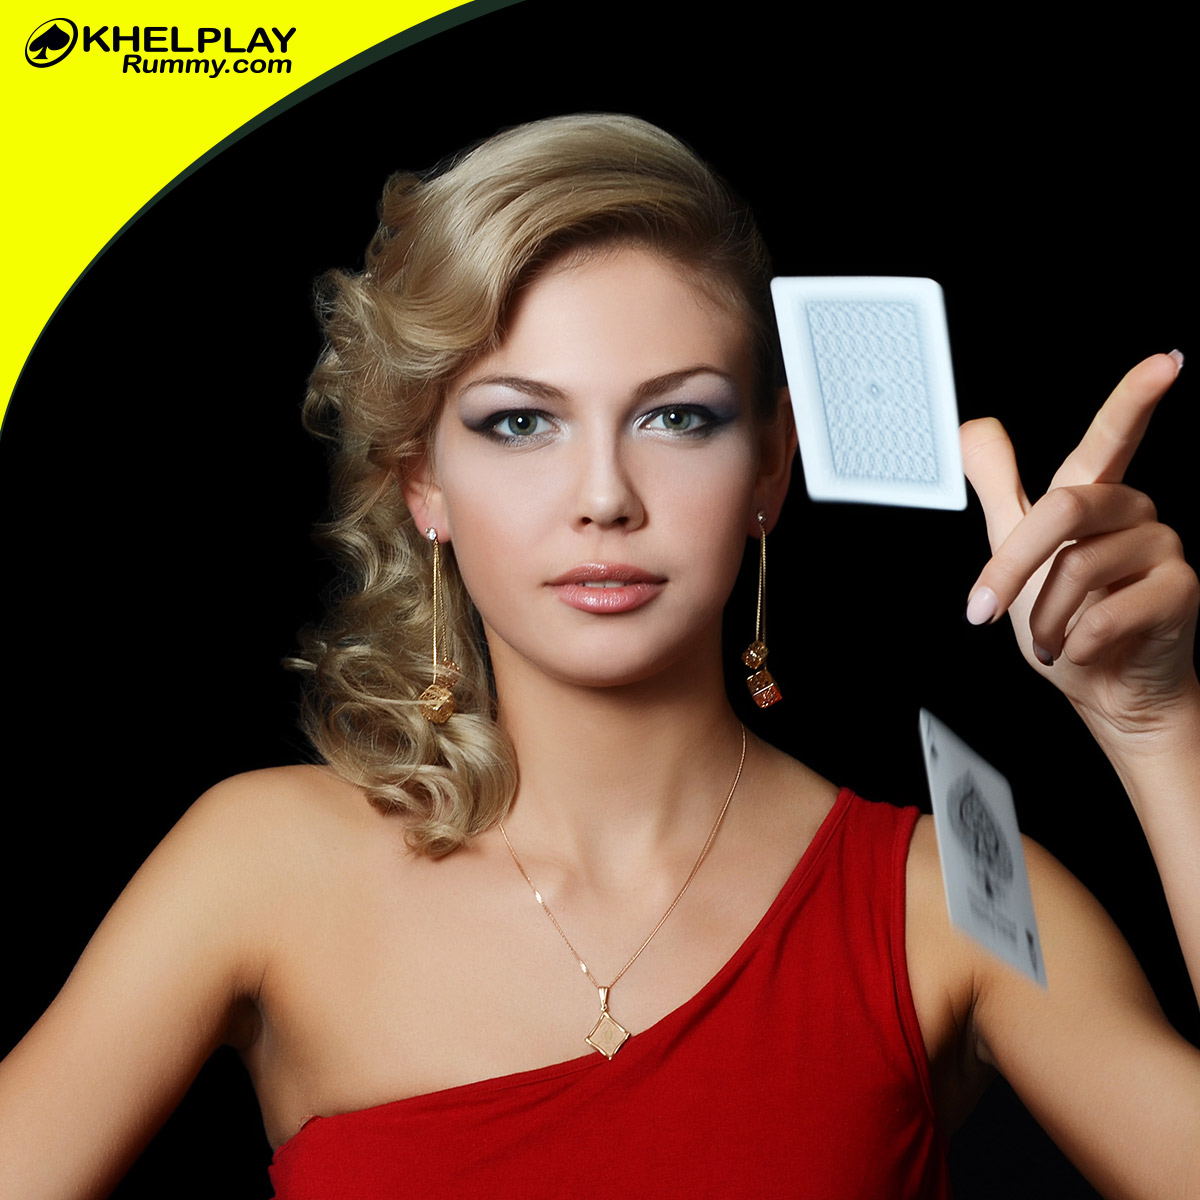 8 Facts About Khelplay Rummy that Make It Attractive